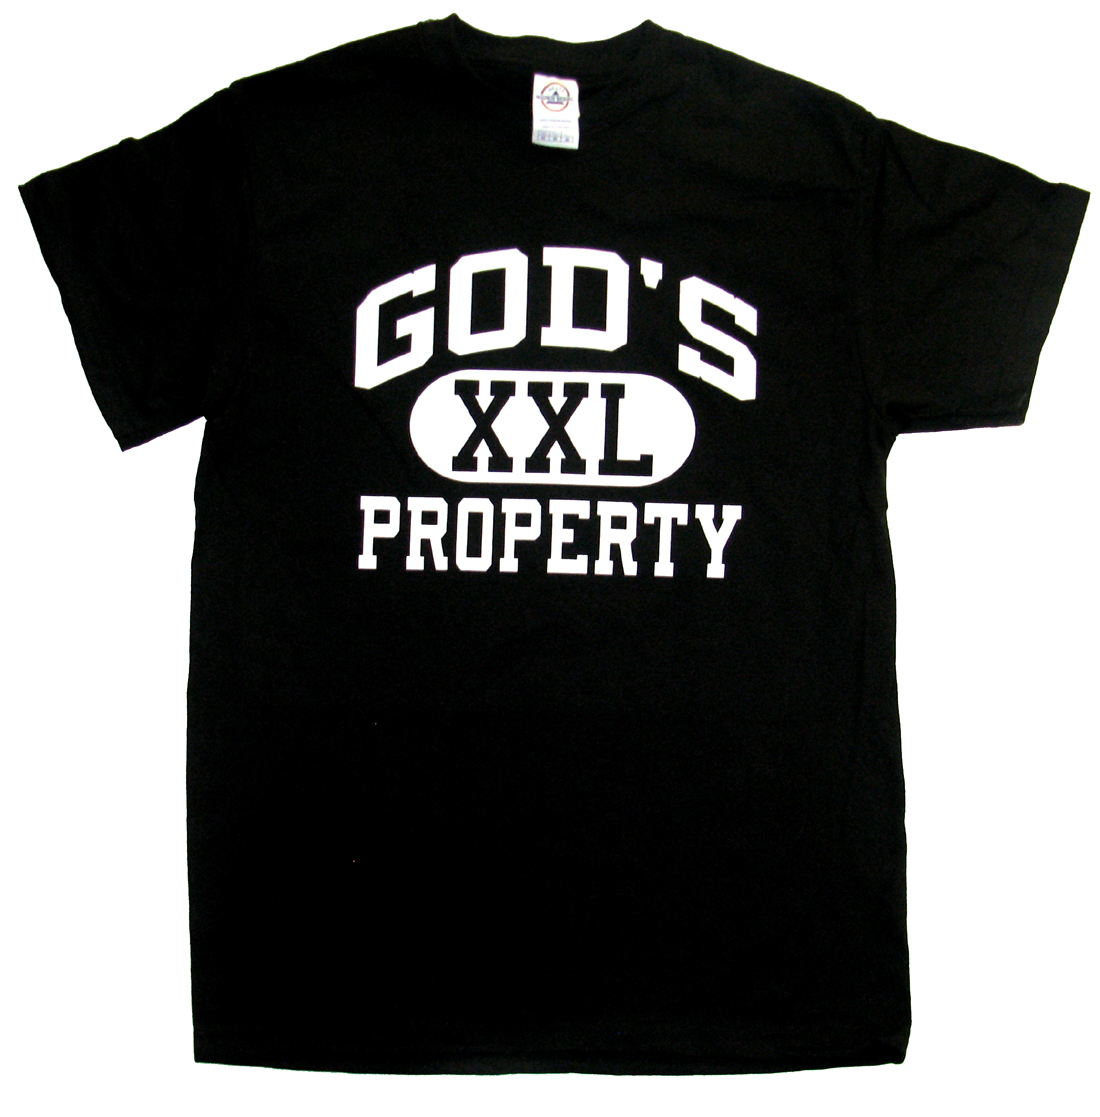 God's Property T-shirt Christian Tee Athlectic